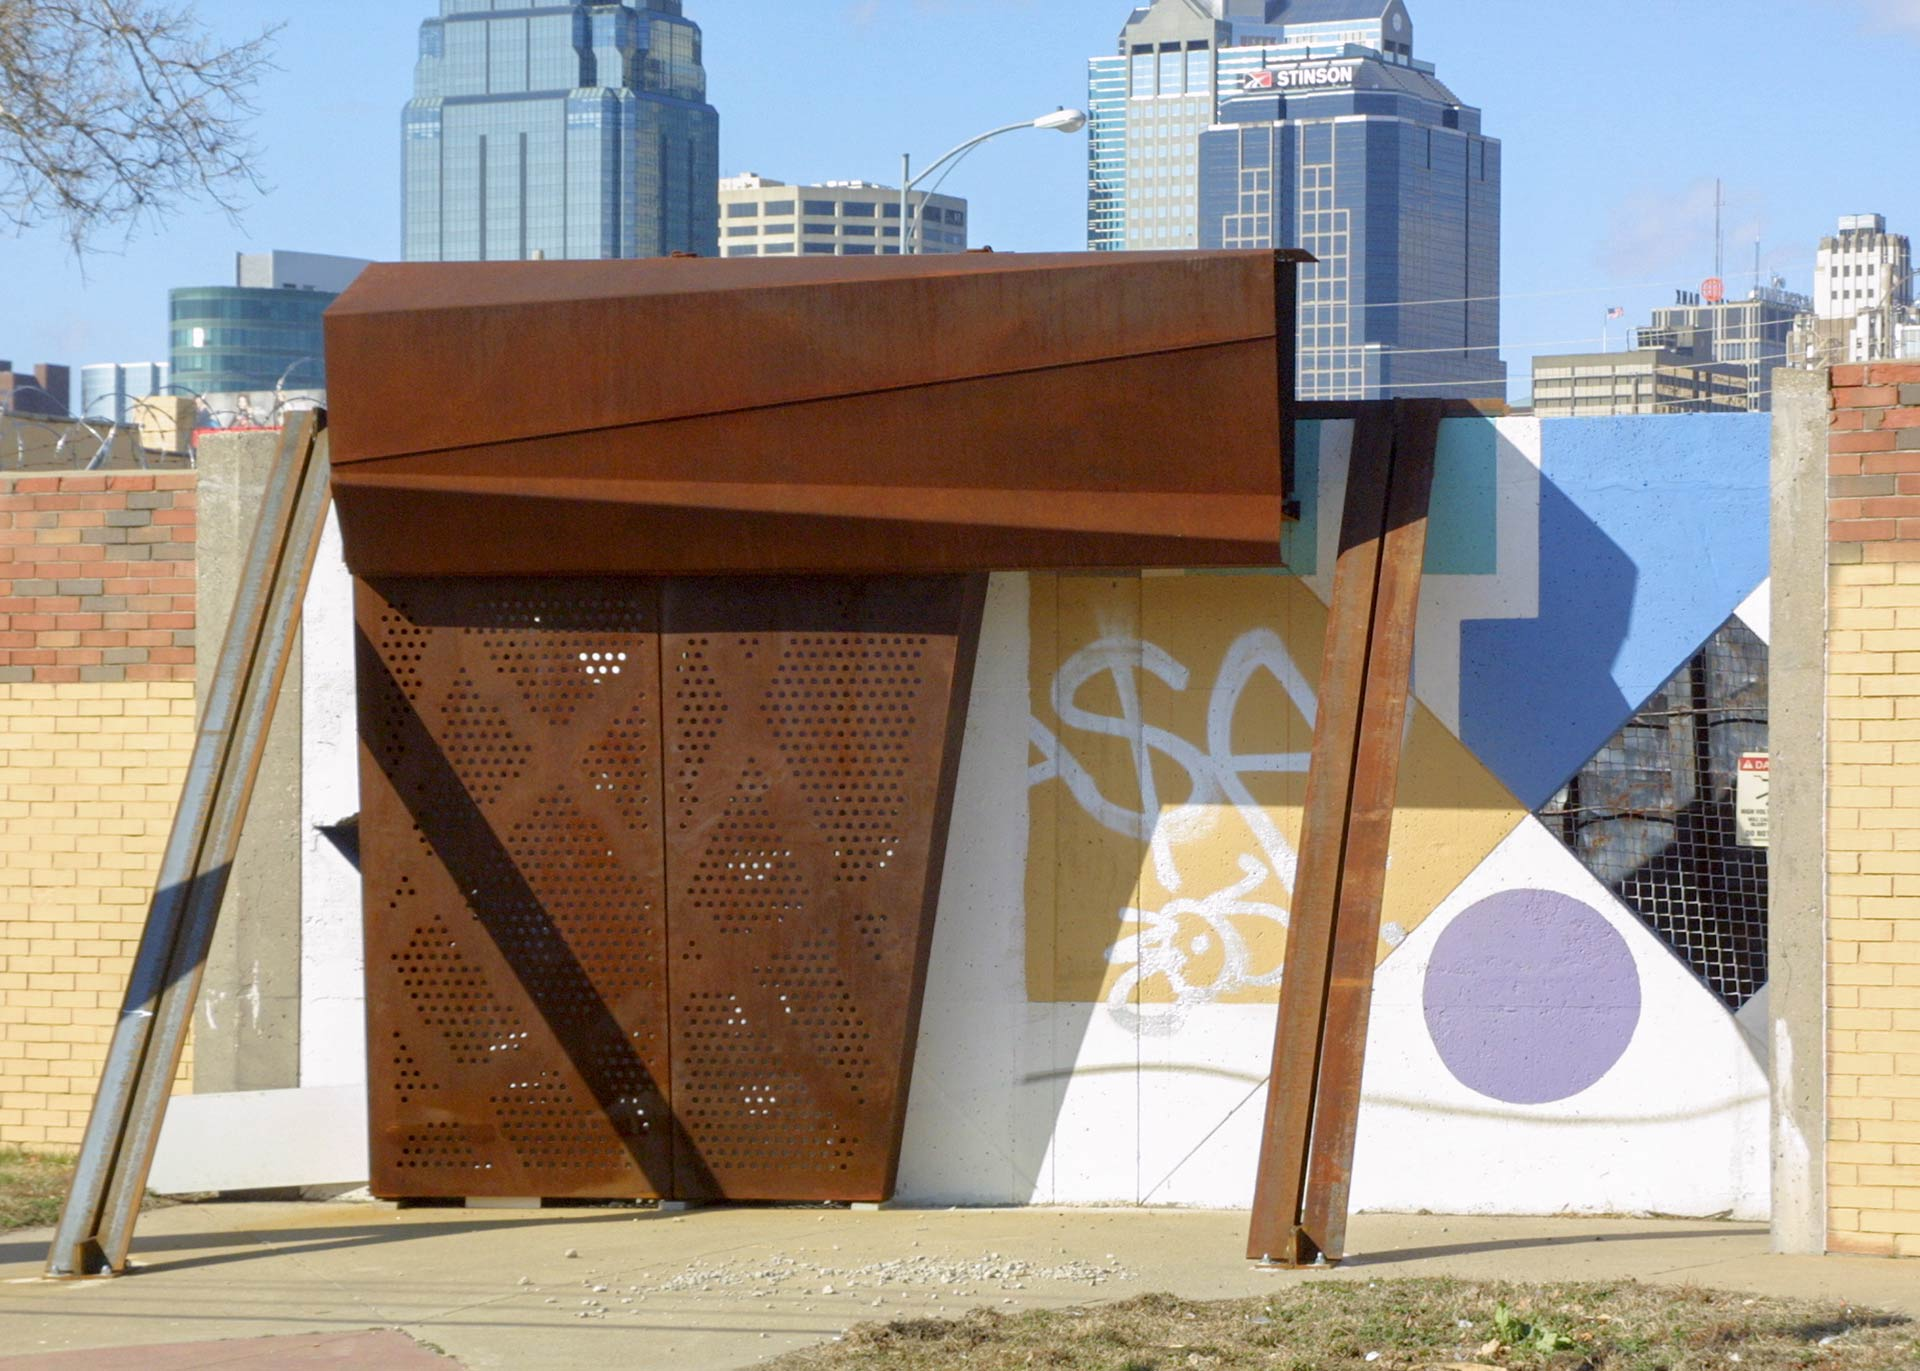 Mockup of Crosstown Substation, installed on-site at the previous park.